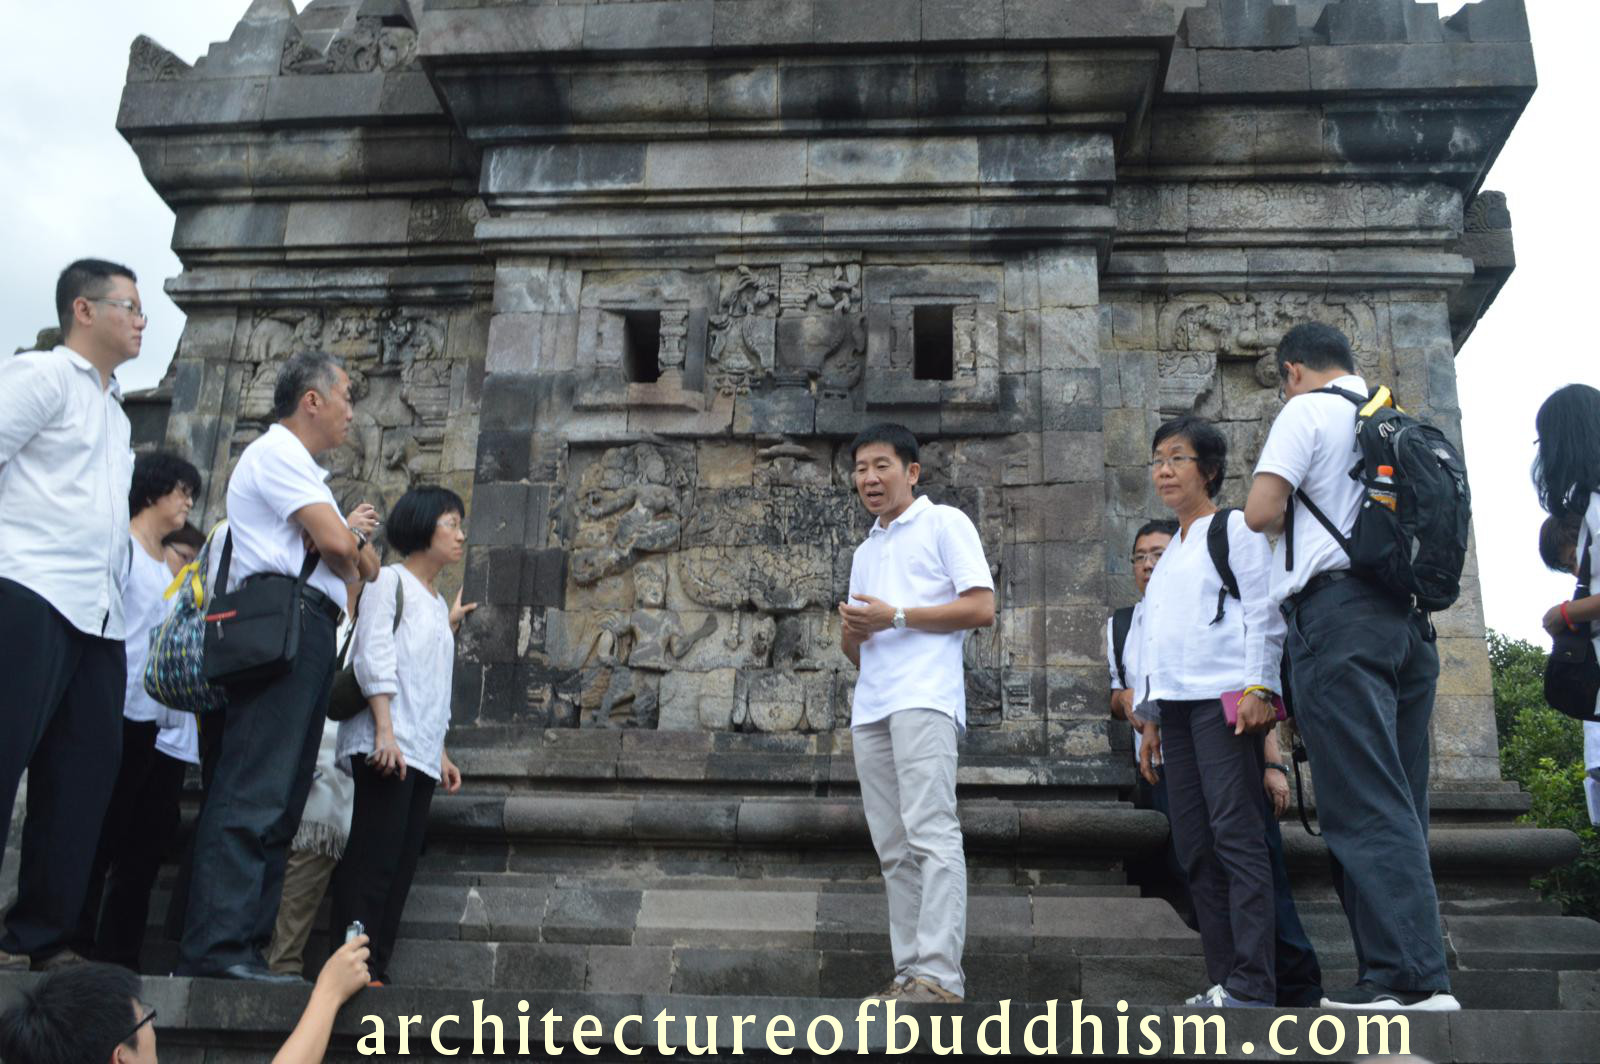 Brother Tan, explaining the history and features of Candi Pawon